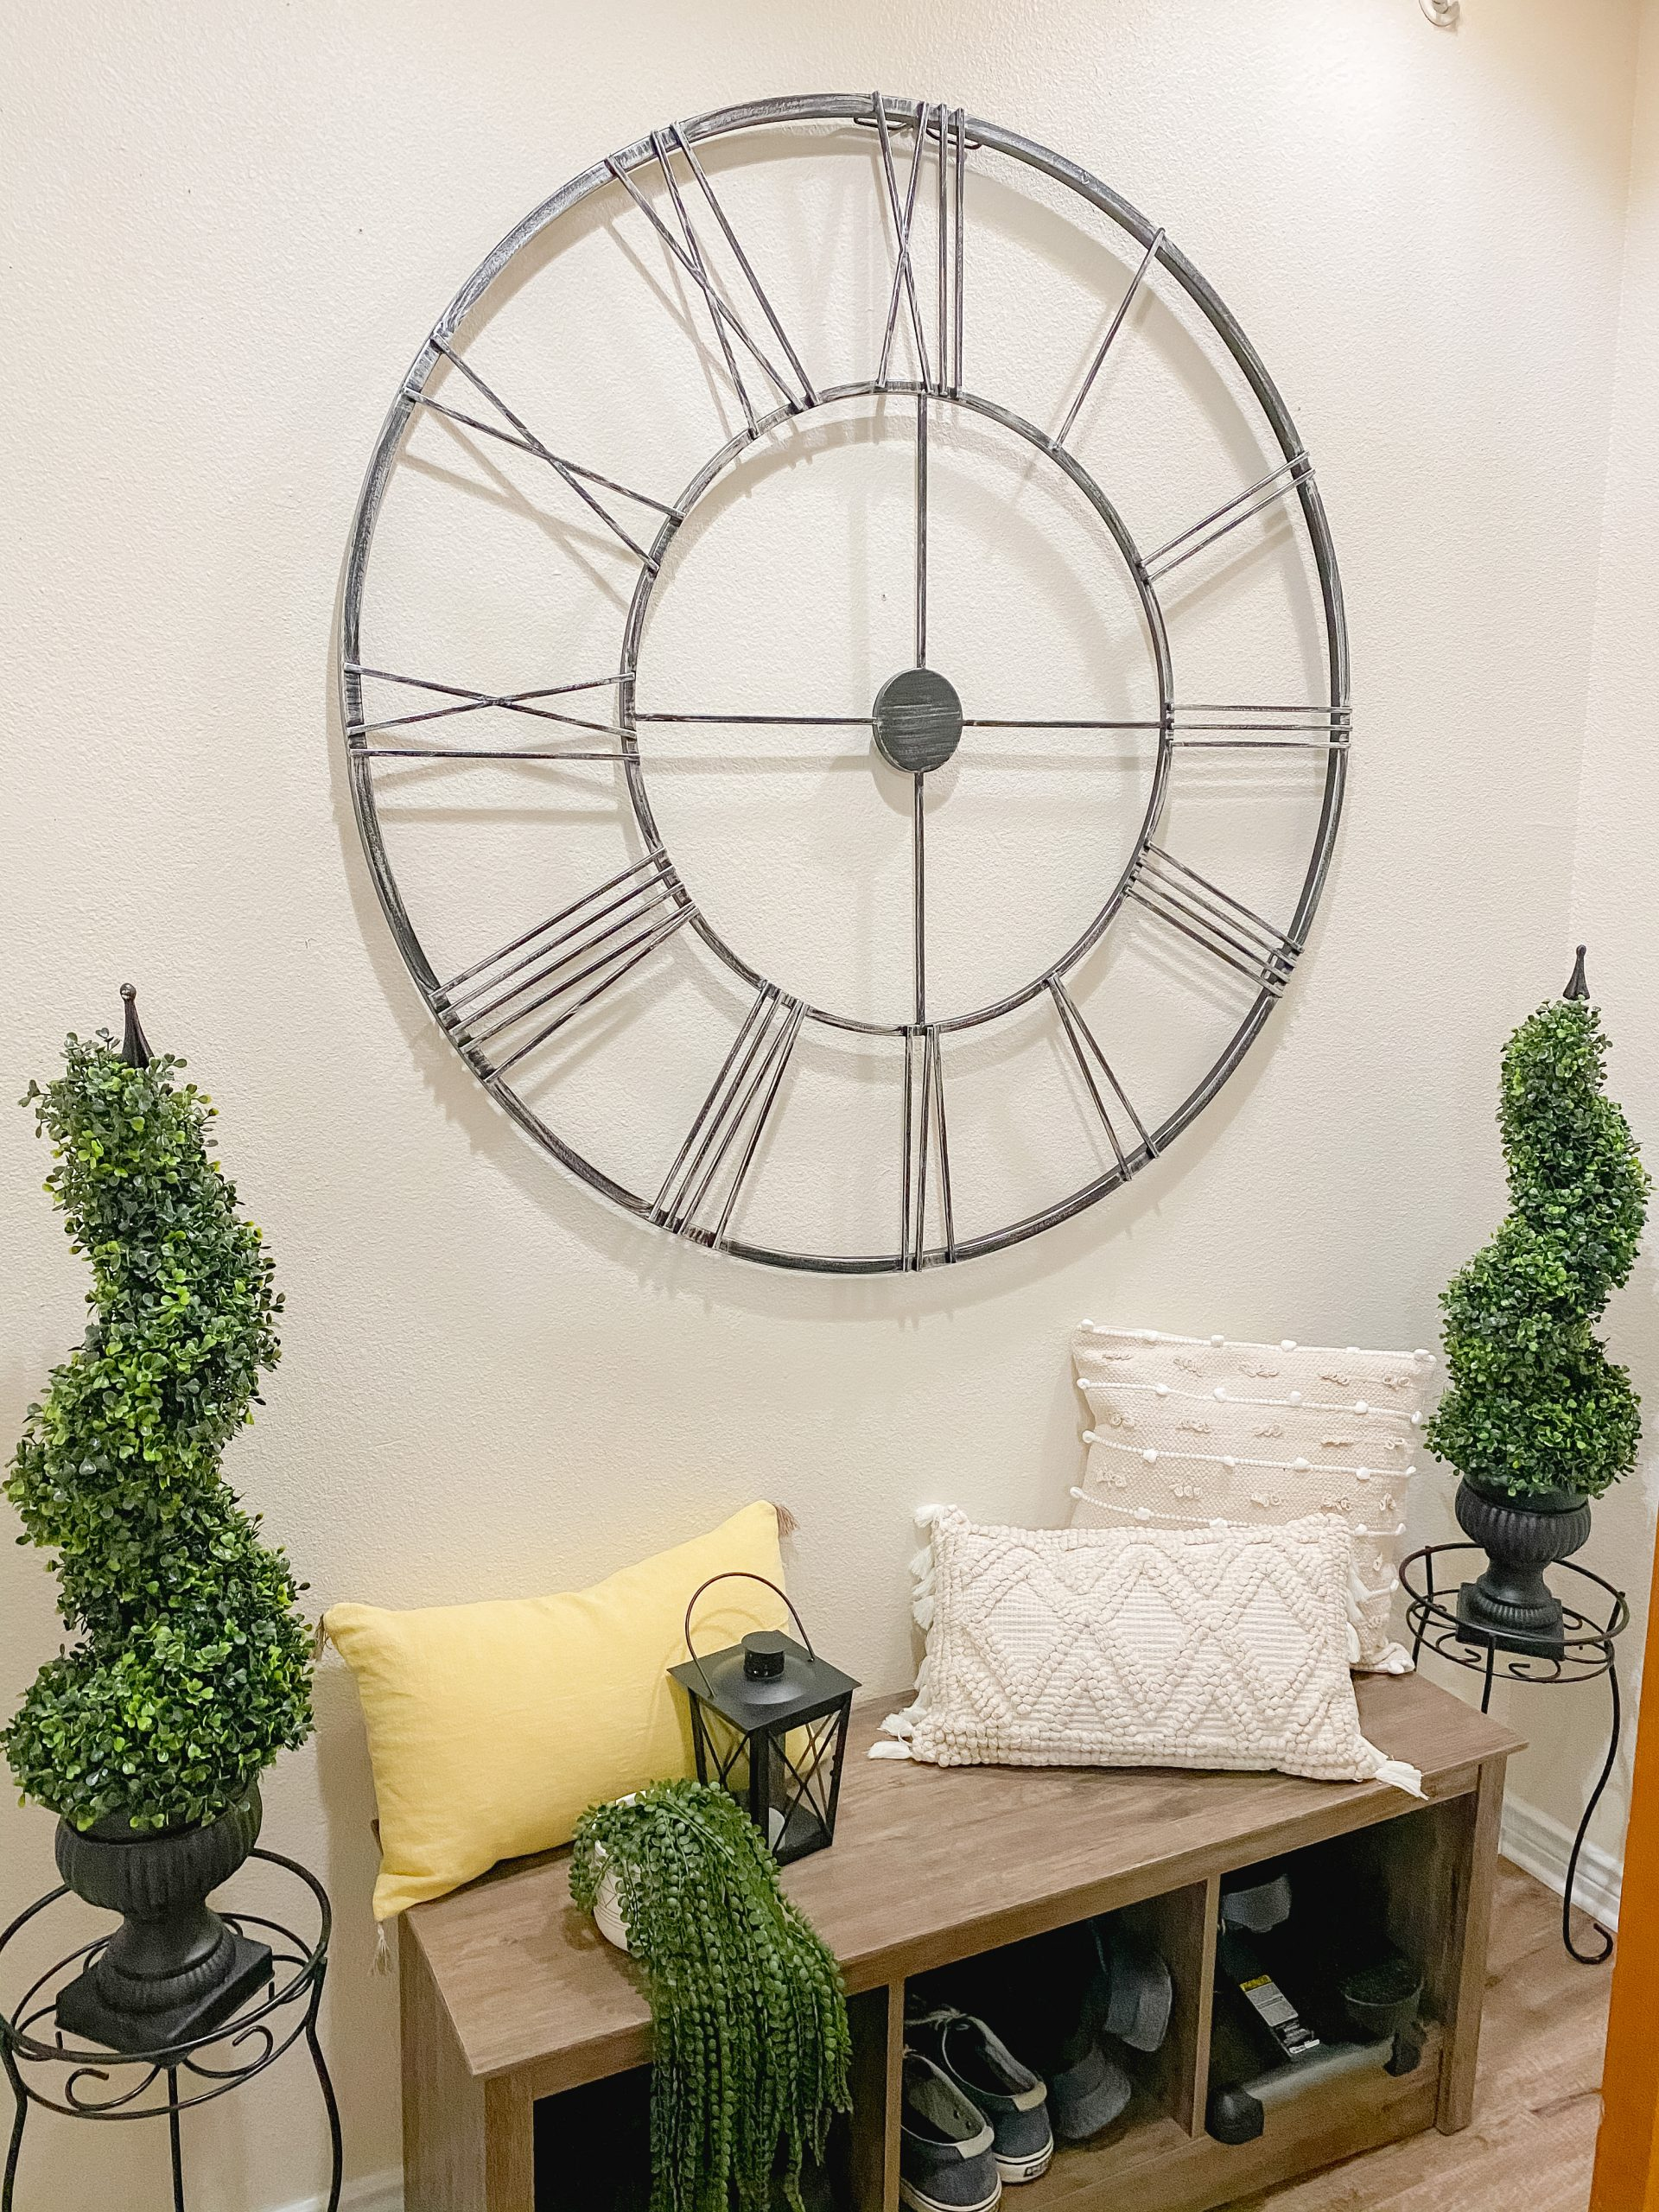 Spring decor in the entry way with an iron clock and greenery.